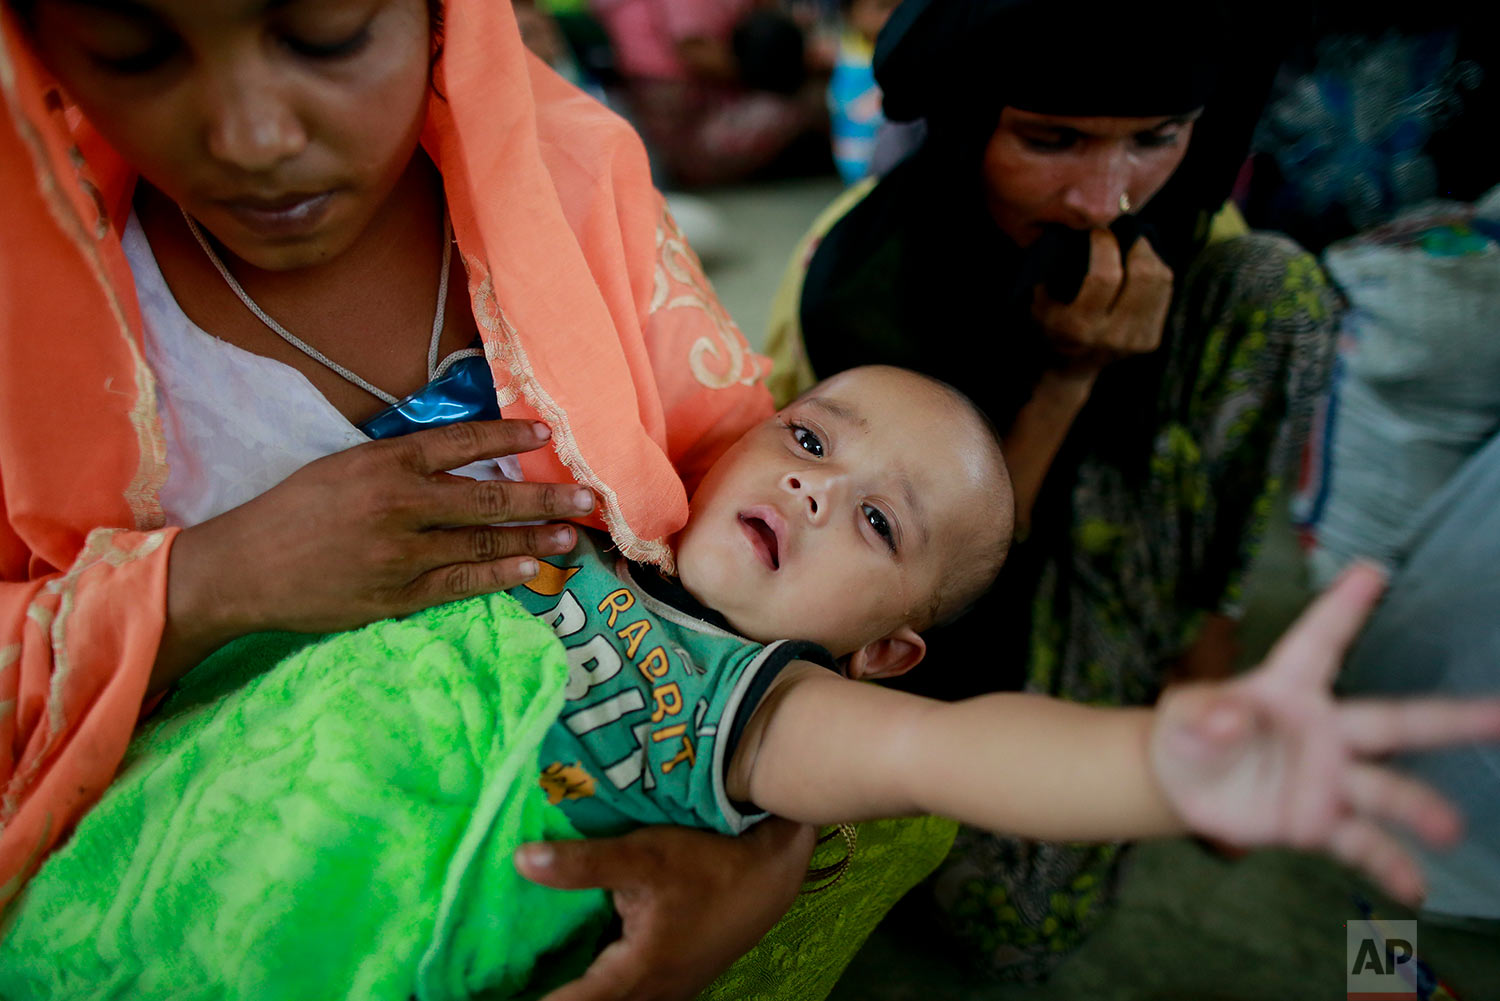 Rohingya woman Rahima, left, sits with her six months old child Jewel at a temporary shelter after being detained by Bangladeshi border guards while crossing the Naf River to enter Bangladesh at Shah Porir Deep, in Teknak, Bangladesh, Thursday, Aug. 31, 2017. Three boats carrying ethnic Rohingya fleeing violence in Myanmar have capsized in Bangladesh and 26 bodies of women and children have been recovered, officials said Thursday. Last week, a group of ethnic minority Rohingya insurgents attacked at least two dozen police posts in Myanmar's Rakhine state, triggering fighting with security forces that left more than 100 people dead and forced at least 18,000 Rohingya to flee into neighboring Bangladesh. (AP Photo/Suvra Kanti Das)